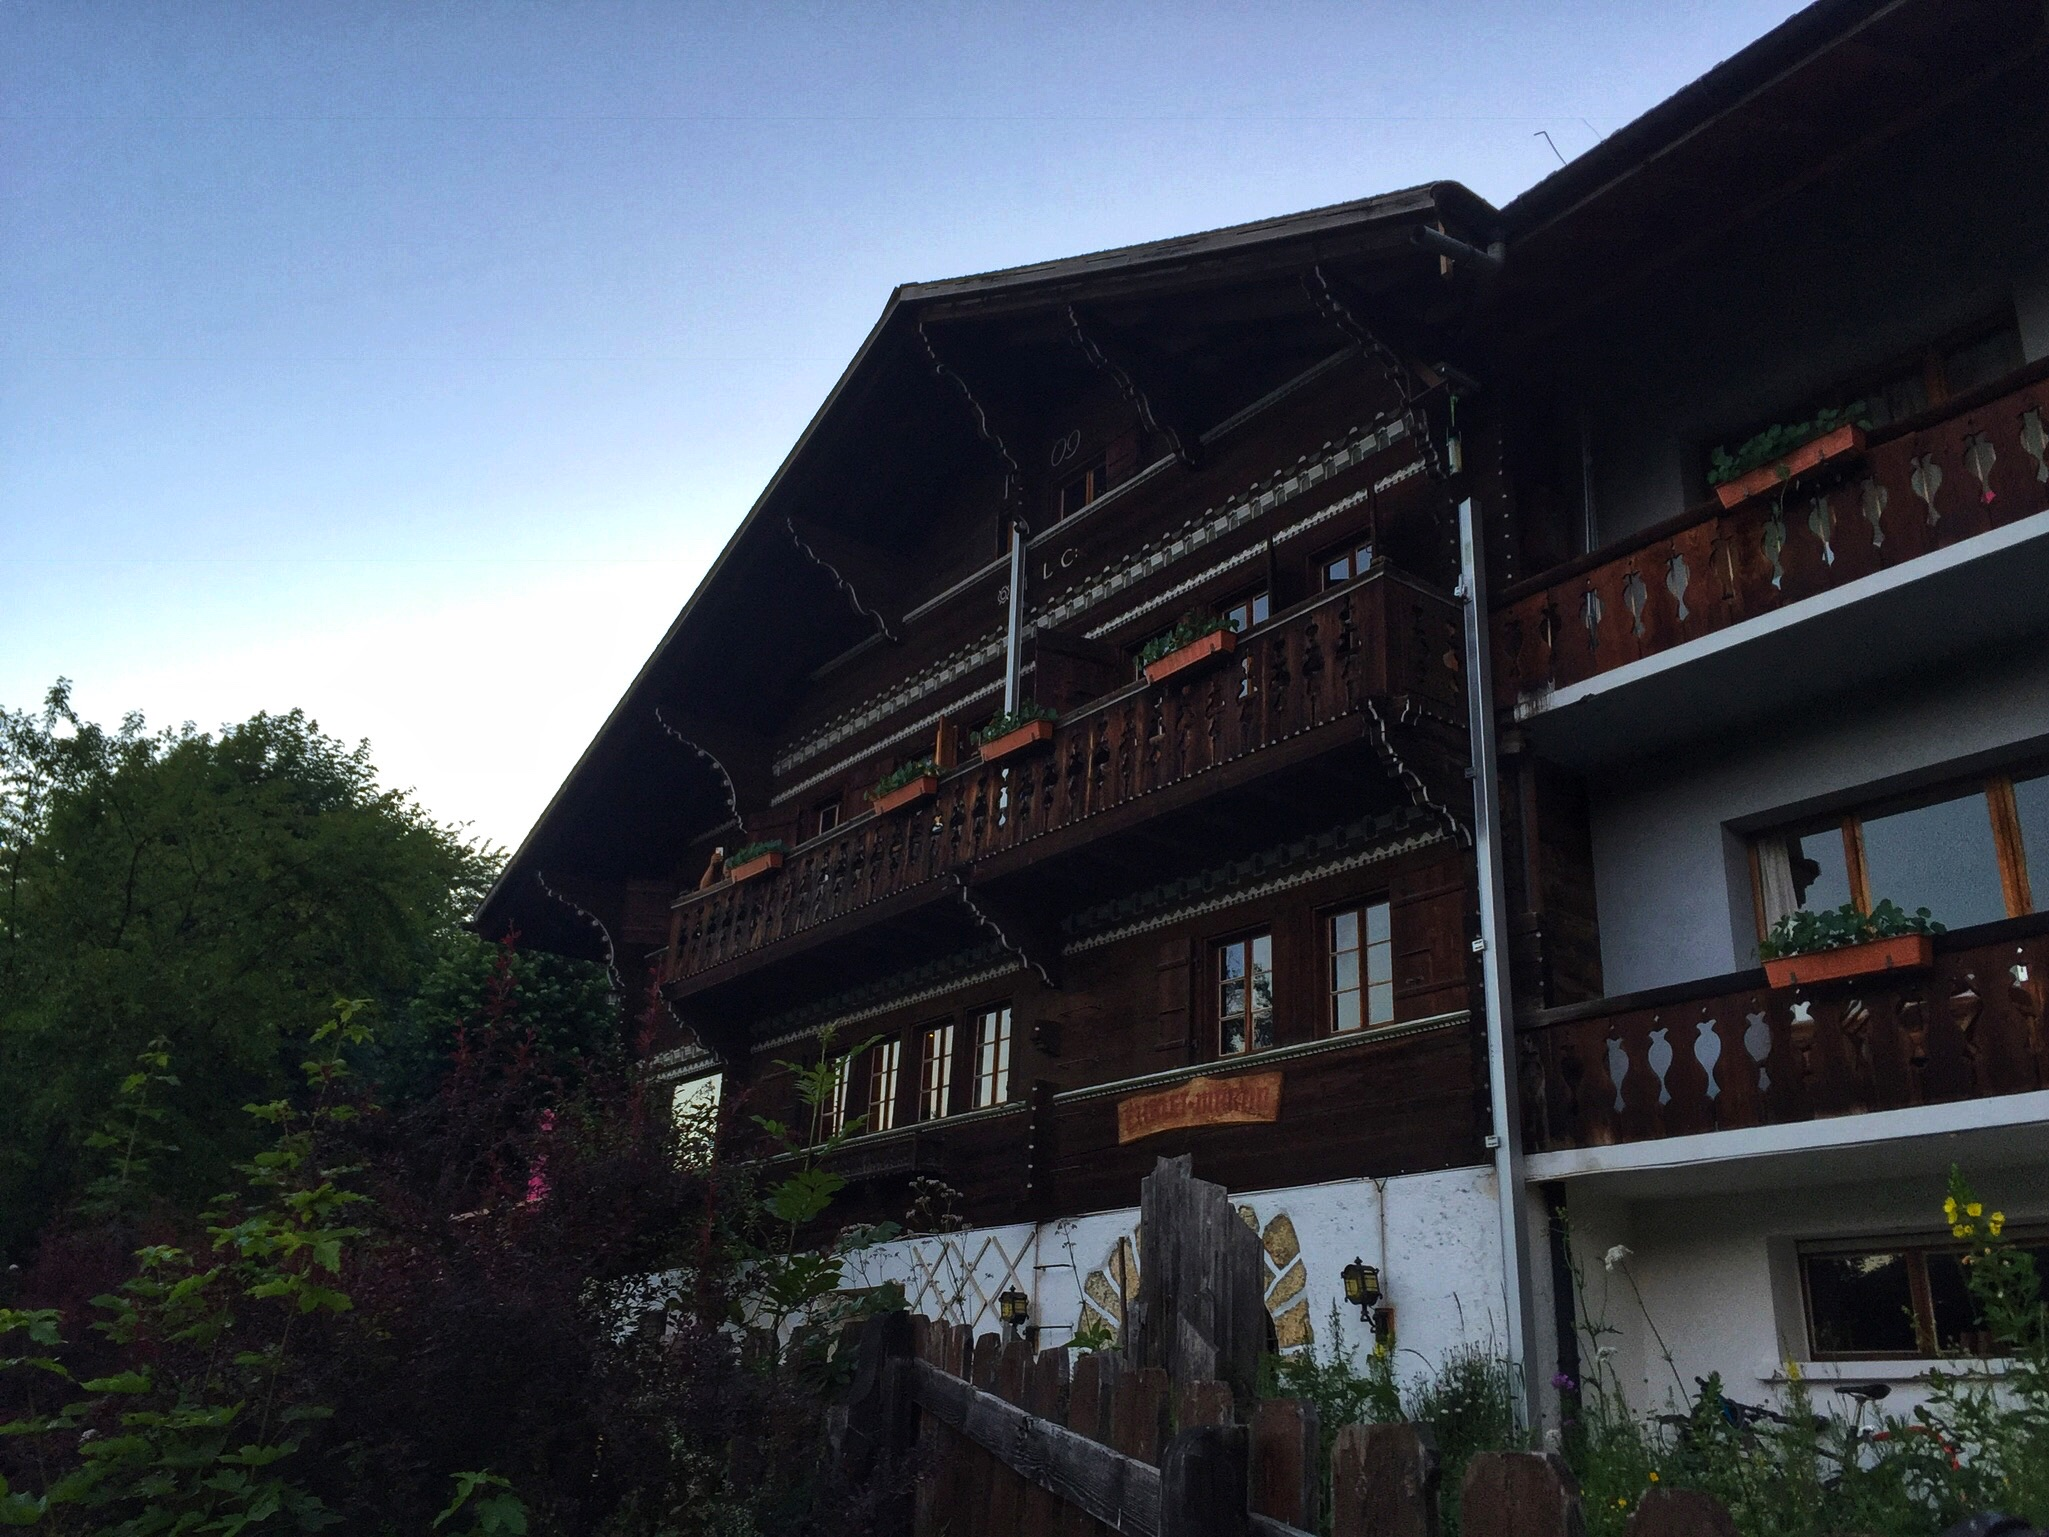 View of the chalet.